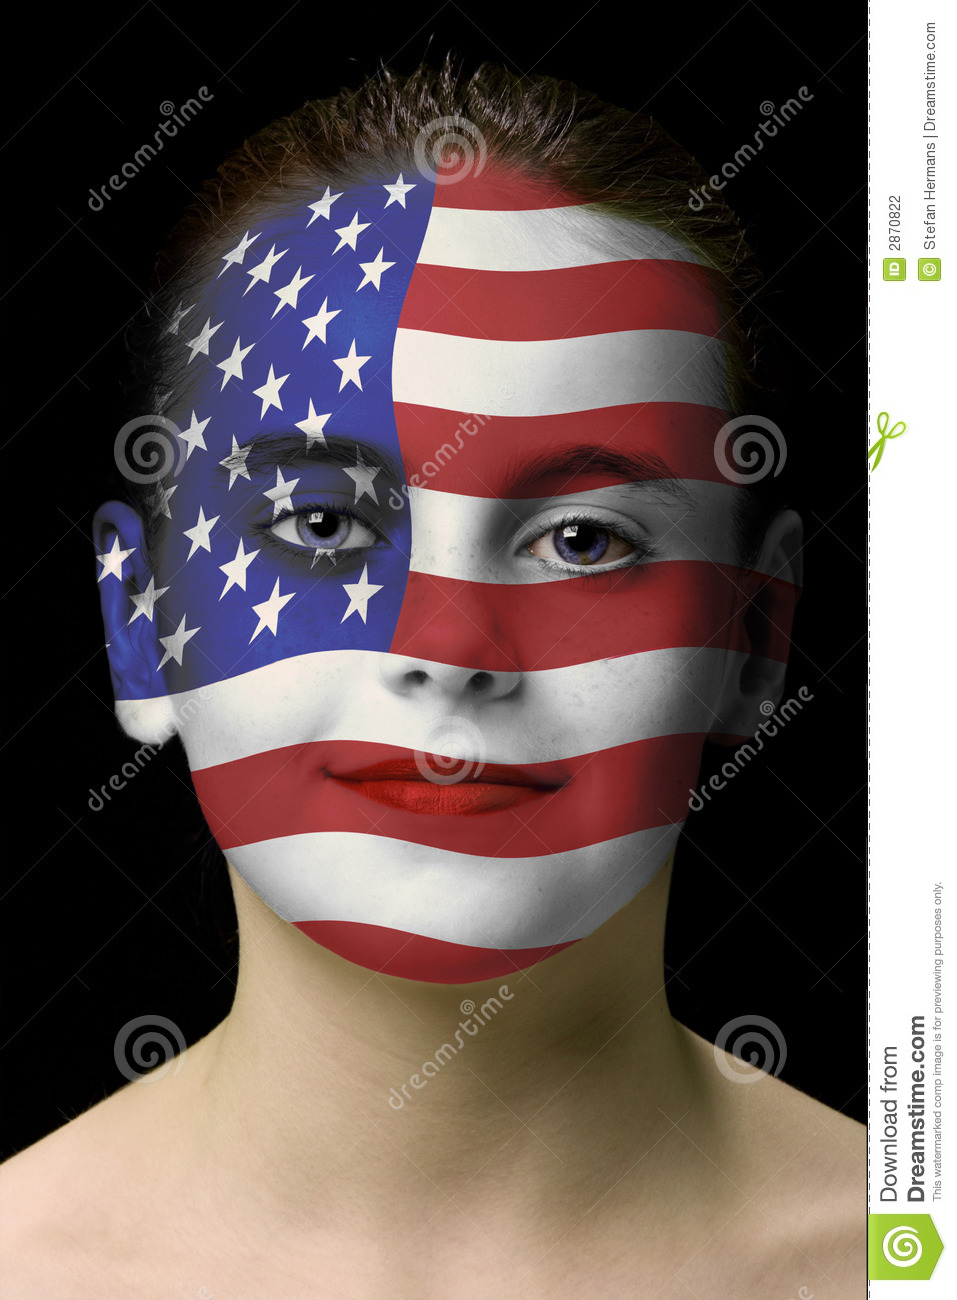 Face paint : american flag